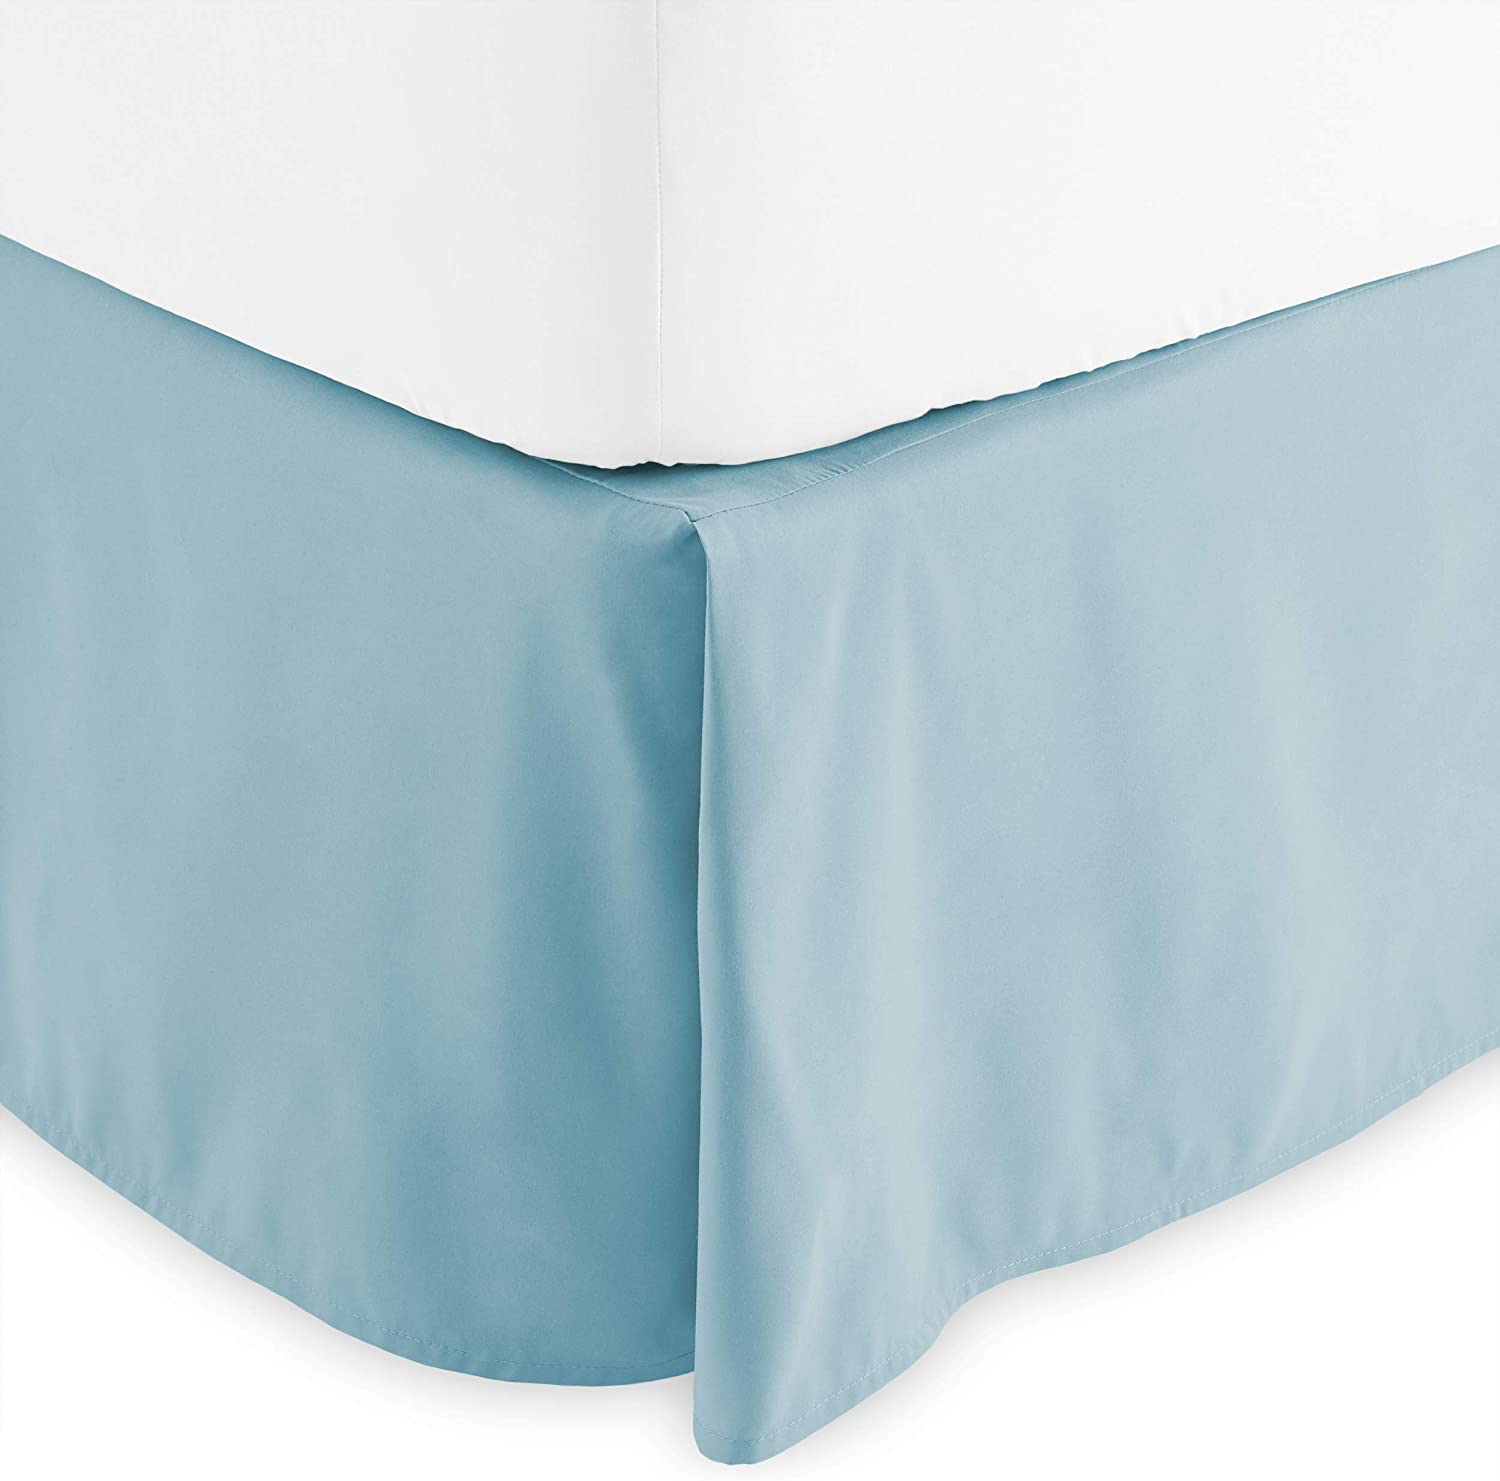 Bare Home Kids Bed Skirt Double Brushed Premium Microfiber, 15-Inch Tailored Drop Pleated Dust Ruffle, 1800 Ultra-Soft, Shrink and Fade Resistant (Twin, Light Blue)